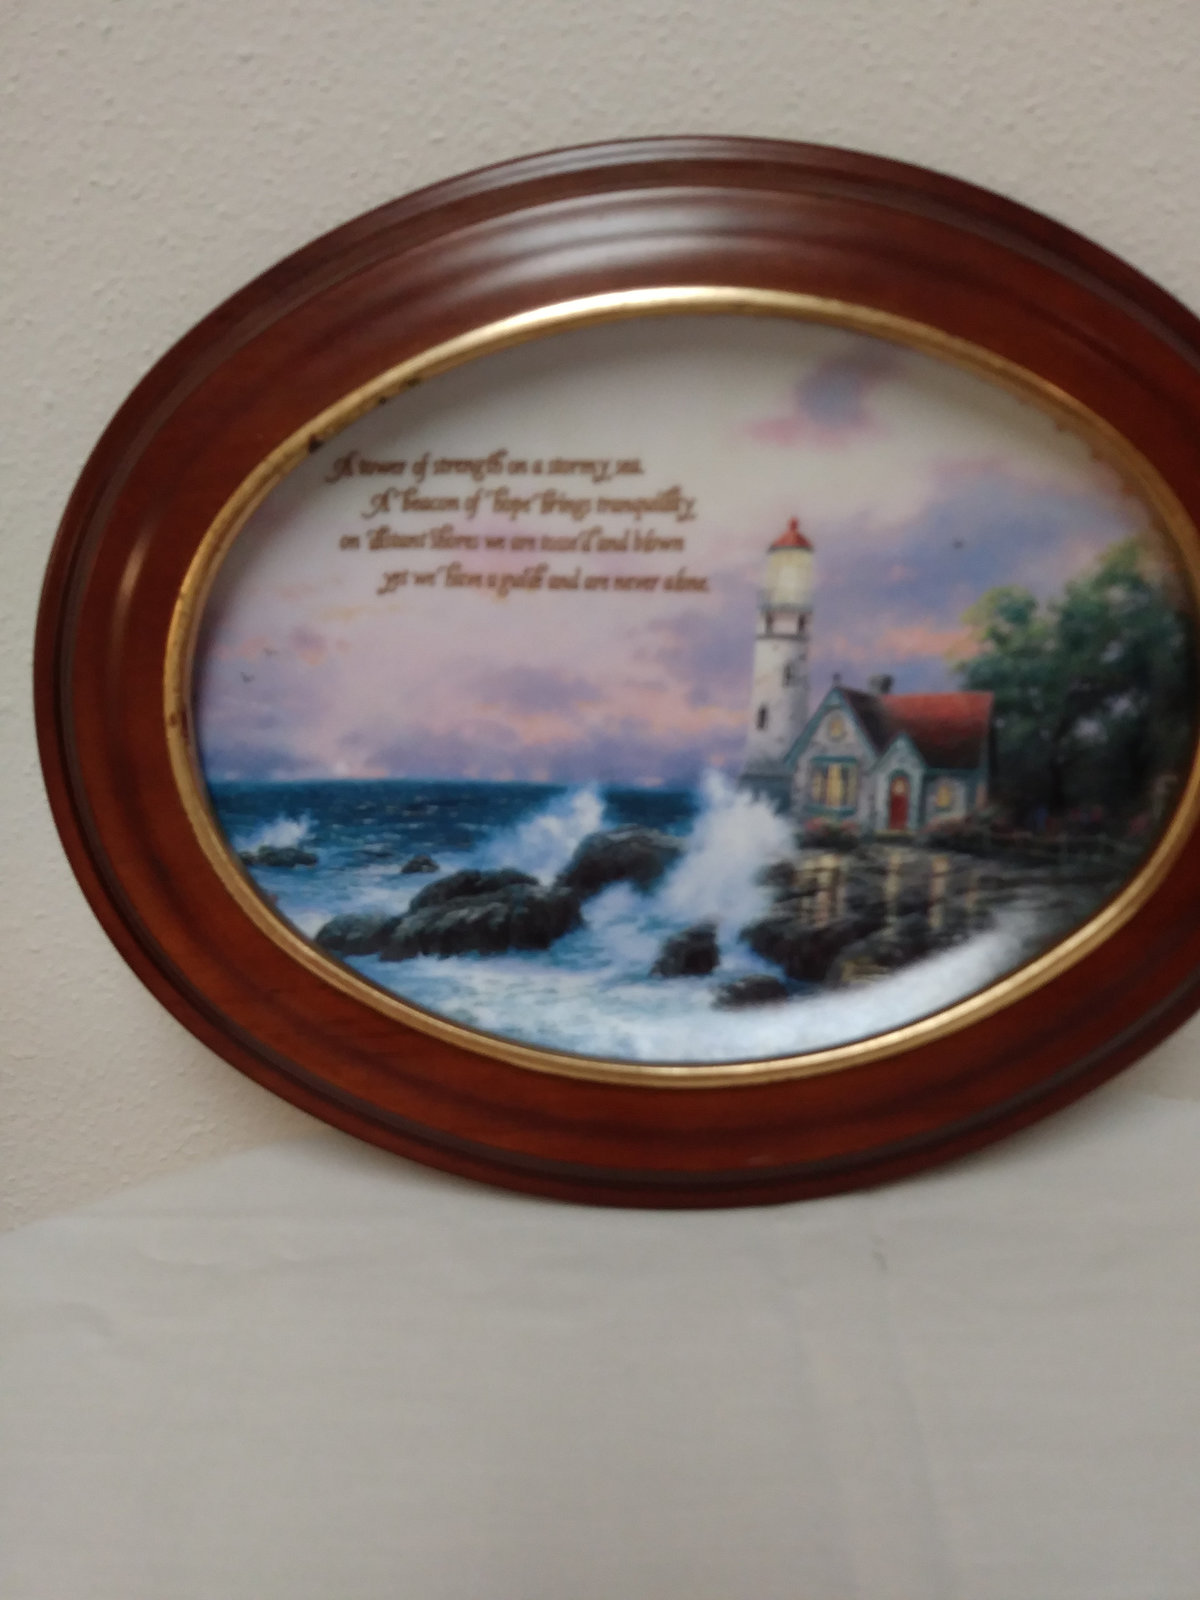 Beacon of Hope by Thomas Kinkade Wall Plaque Plate Number 1096 C  Plate